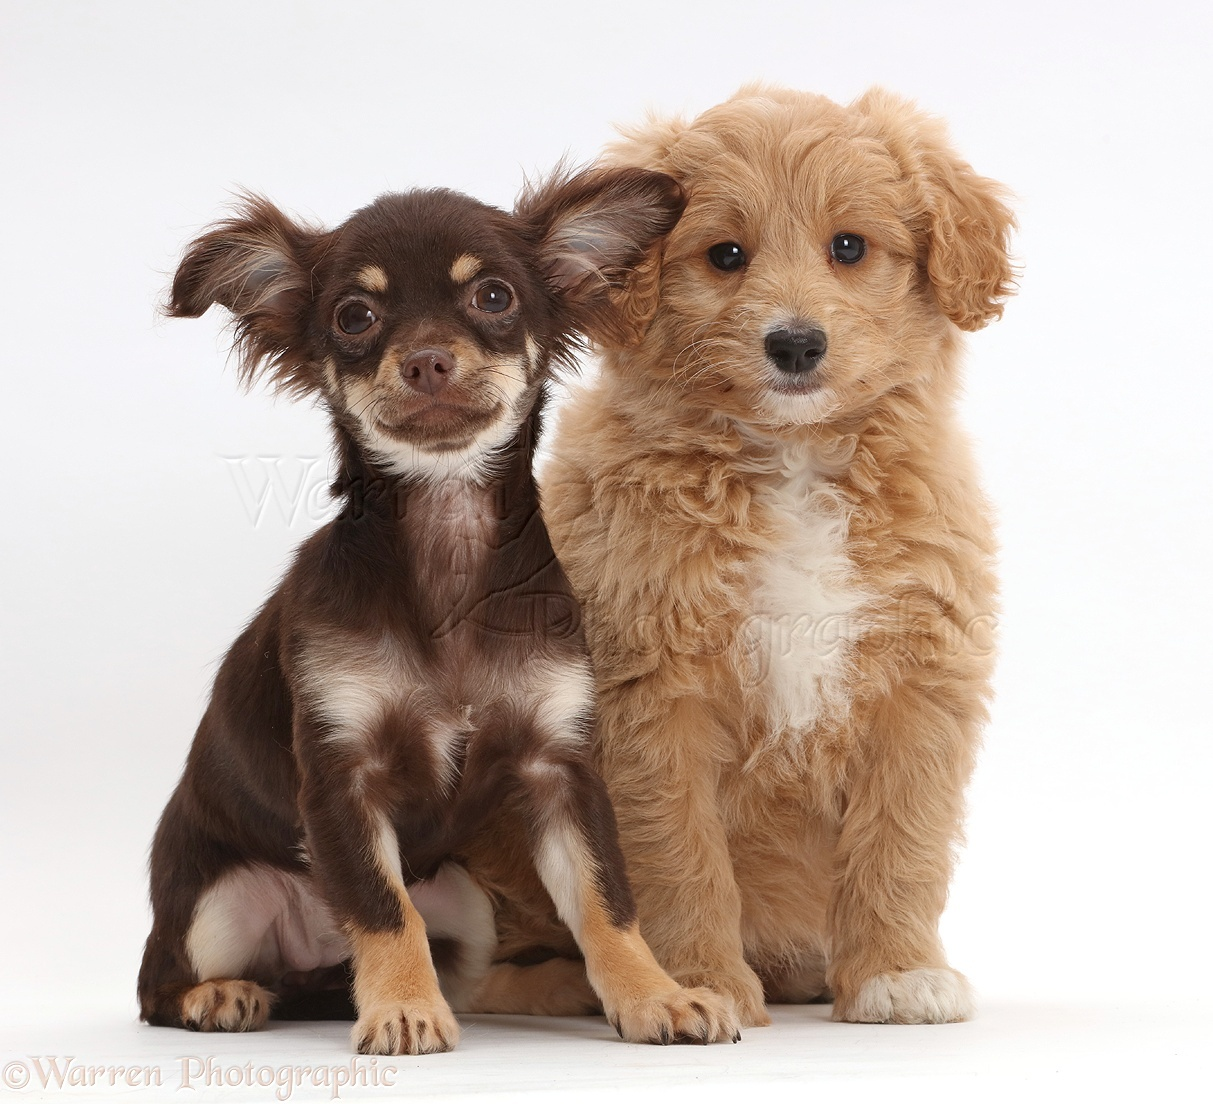 Dogs: Chocolate-and-tan Chihuahua with Cavapoo puppy photo - WP42968